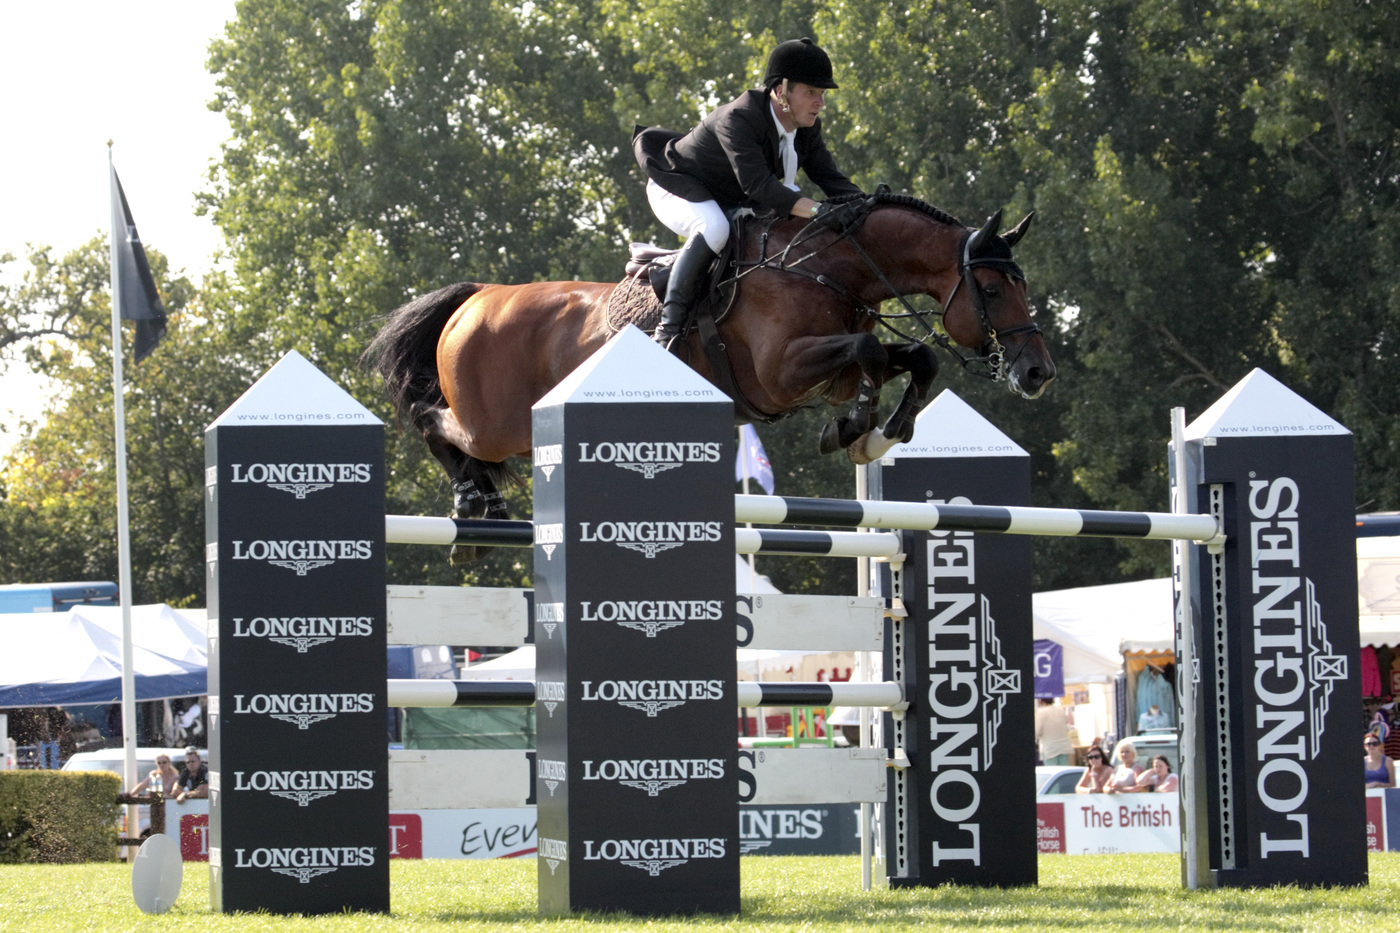 Longines Show Jumping Event: The Longines Royal International Horse Show in Hickstead 3